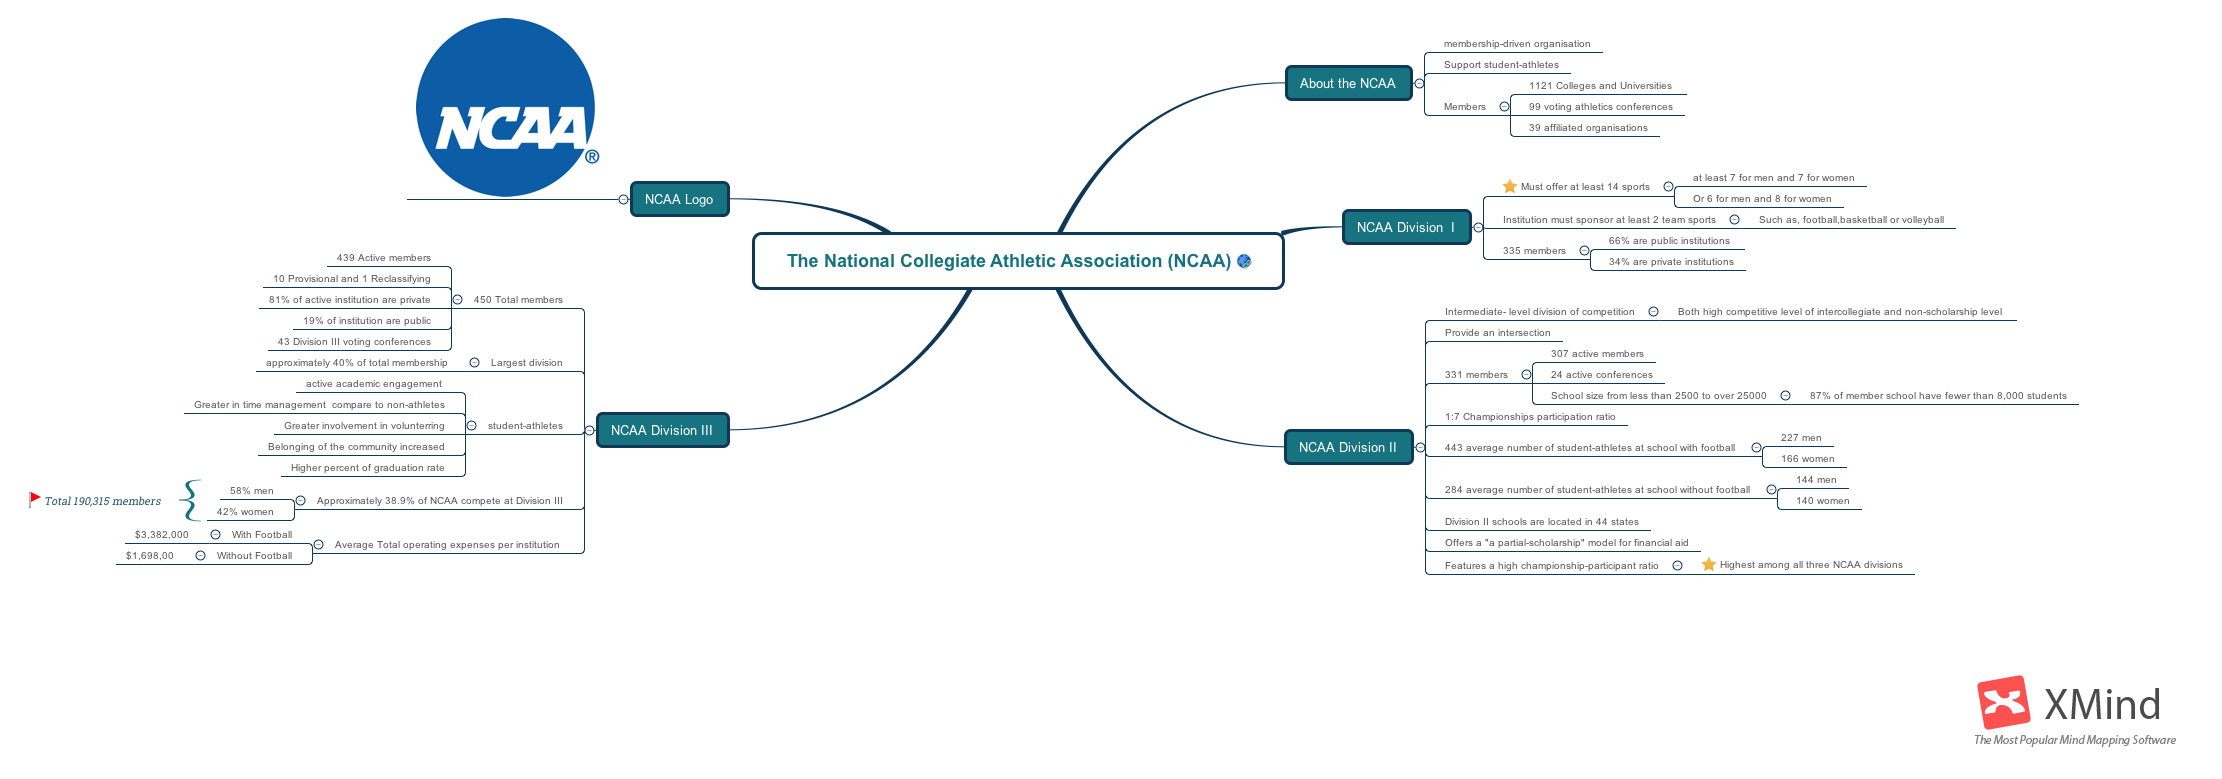 The National Collegiate Athletic Association (NCAA)